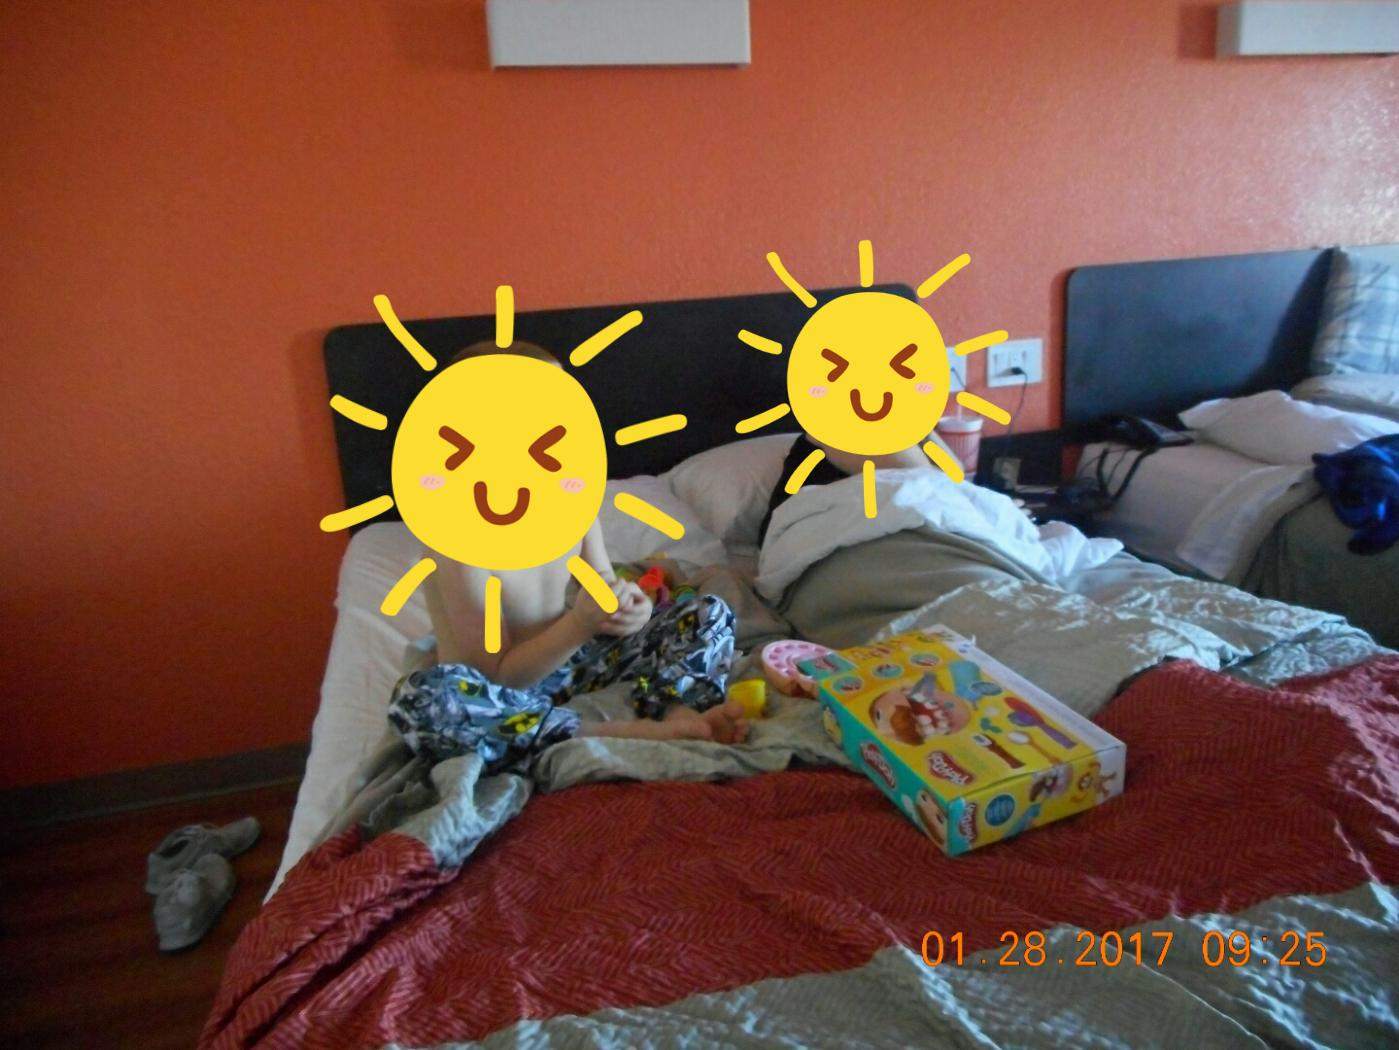 Pic showing bed